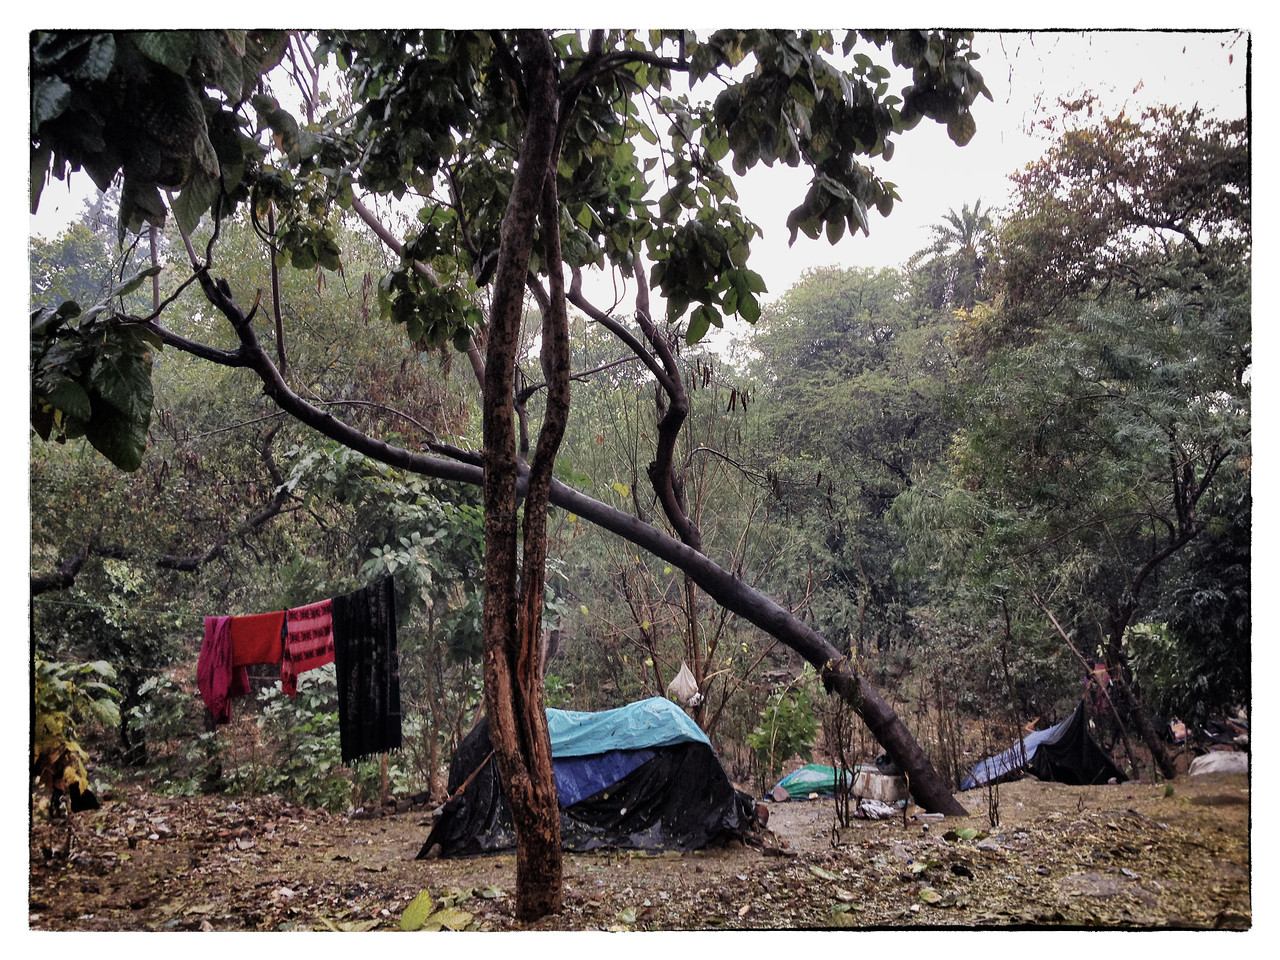 Delhi, India, Feb 2013 -    A makeshift slum seen during a rainfall in south delhi an area where top 5 star hotels - The Lodhi  and The Oberoi Hotels are located.   Images for the Global Post's special report -   The Great Divide:  Global income inequality and its cost    Photograph:  Sami SIVA